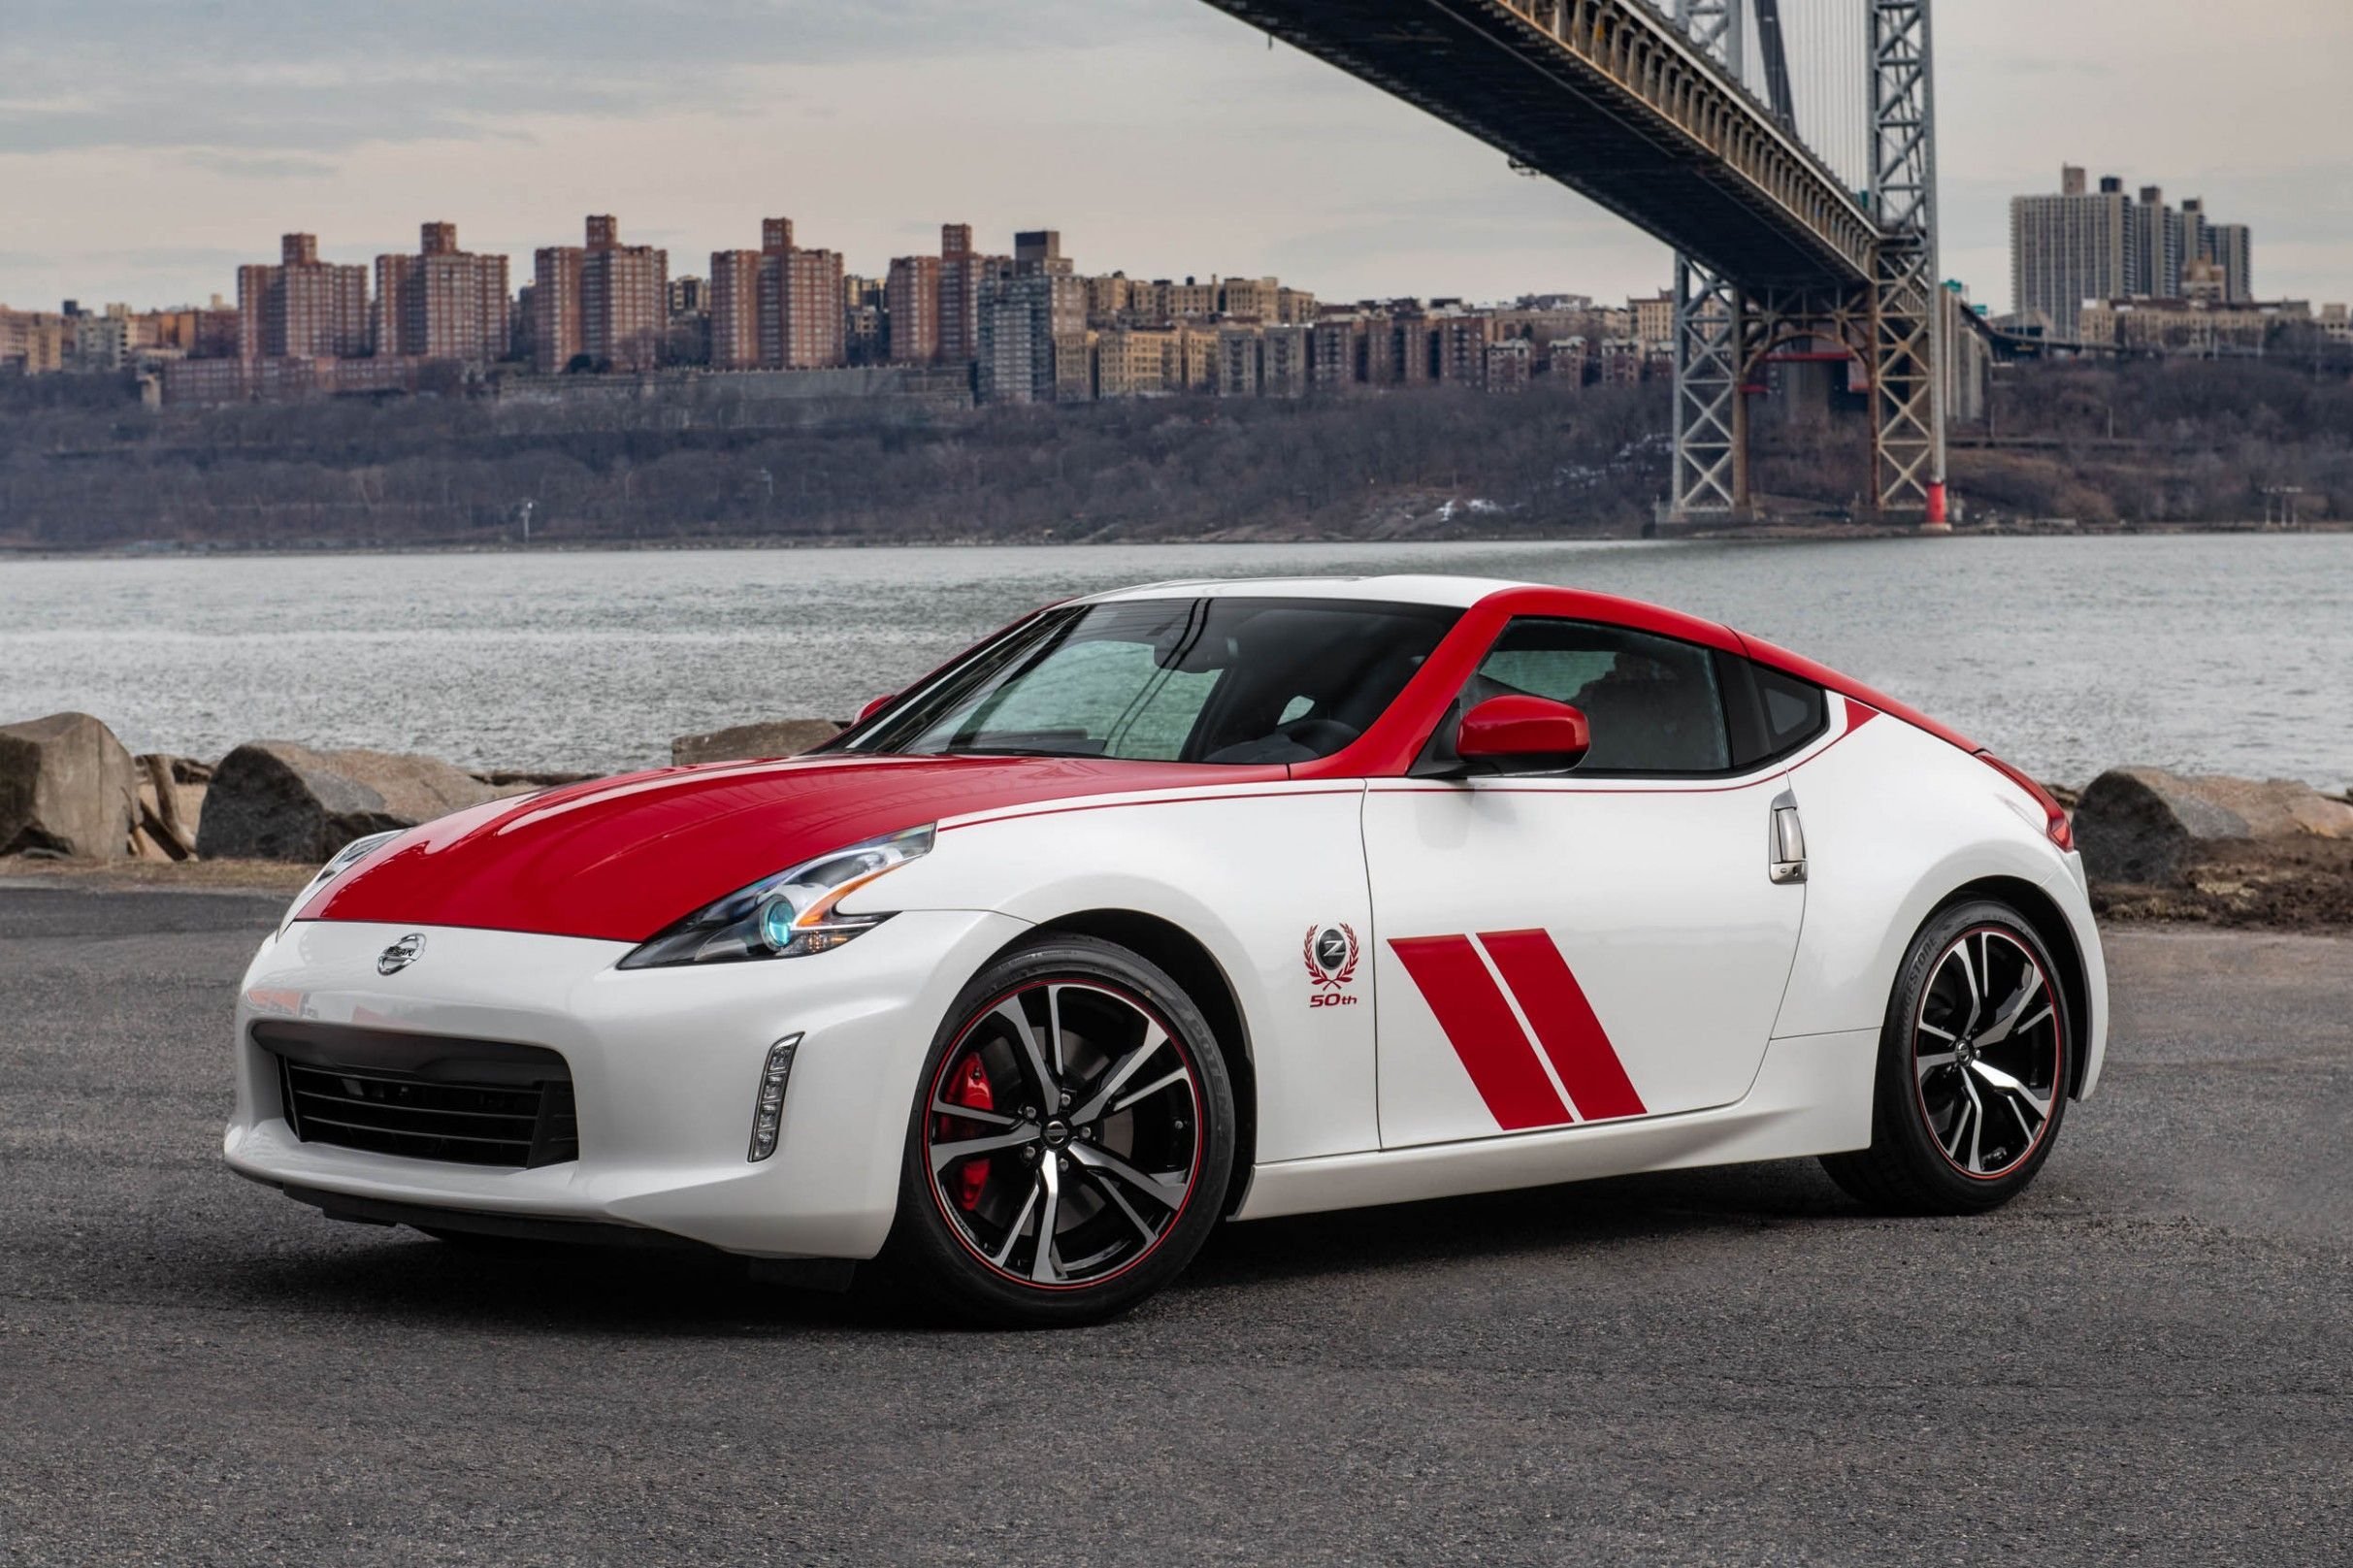 Why You Should Not Go To 2020 Nissan 370z Design Nissan Z Nissan Datsun 240z